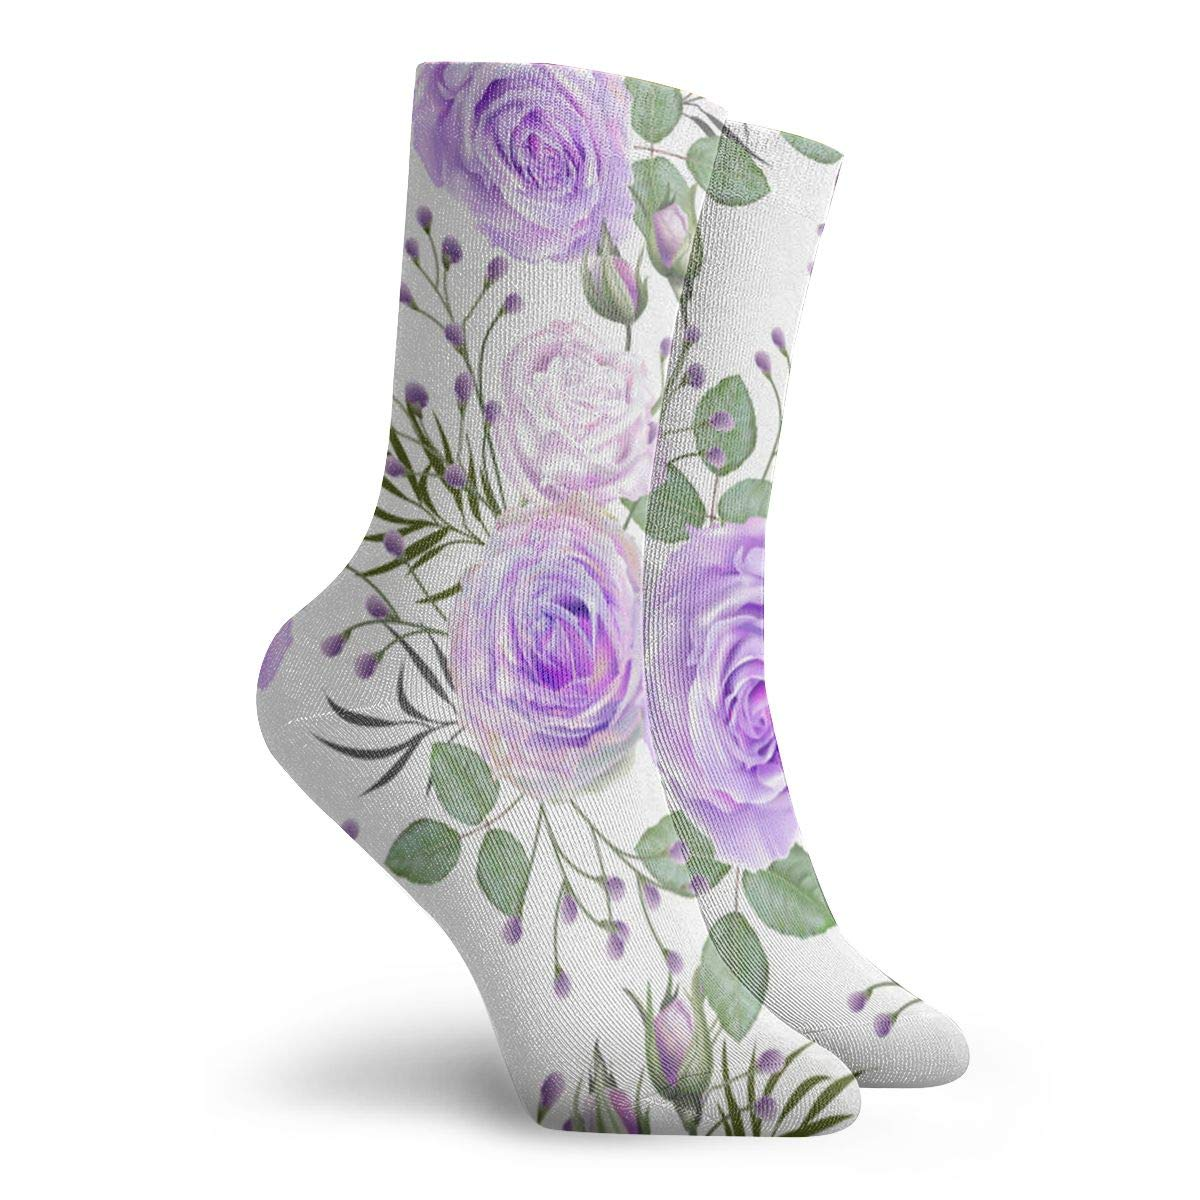 Rose-purple-color Unisex Funny Casual Crew Socks Athletic Socks For Boys Girls Kids Teenagers